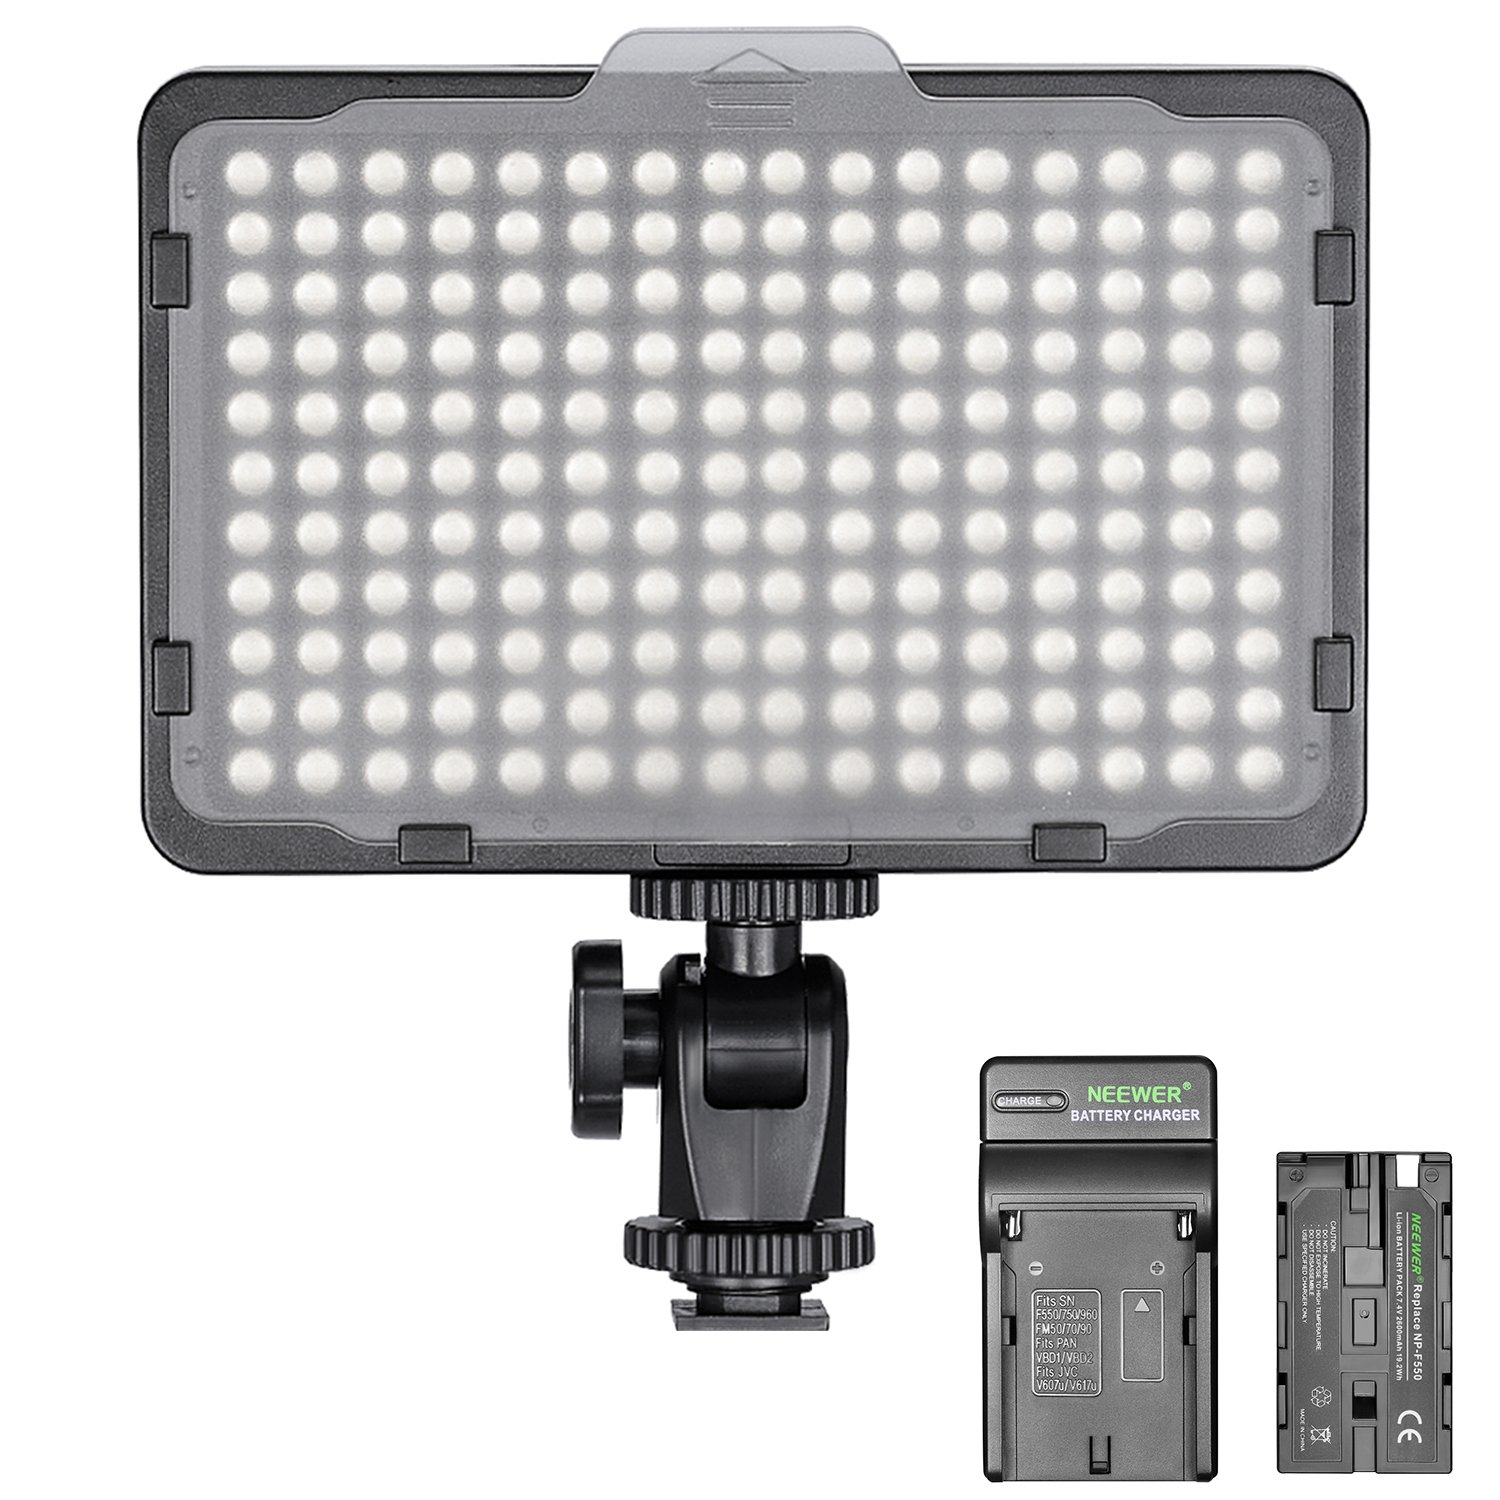 Neewer Dimmable 176 LED Video Light on Camera LED Panel with 2600mAh Li-ion Battery and Charger for Canon, Nikon, Samsung, Olympus and Other Digital SLR Cameras for Photo Studio Video Photography by Neewer